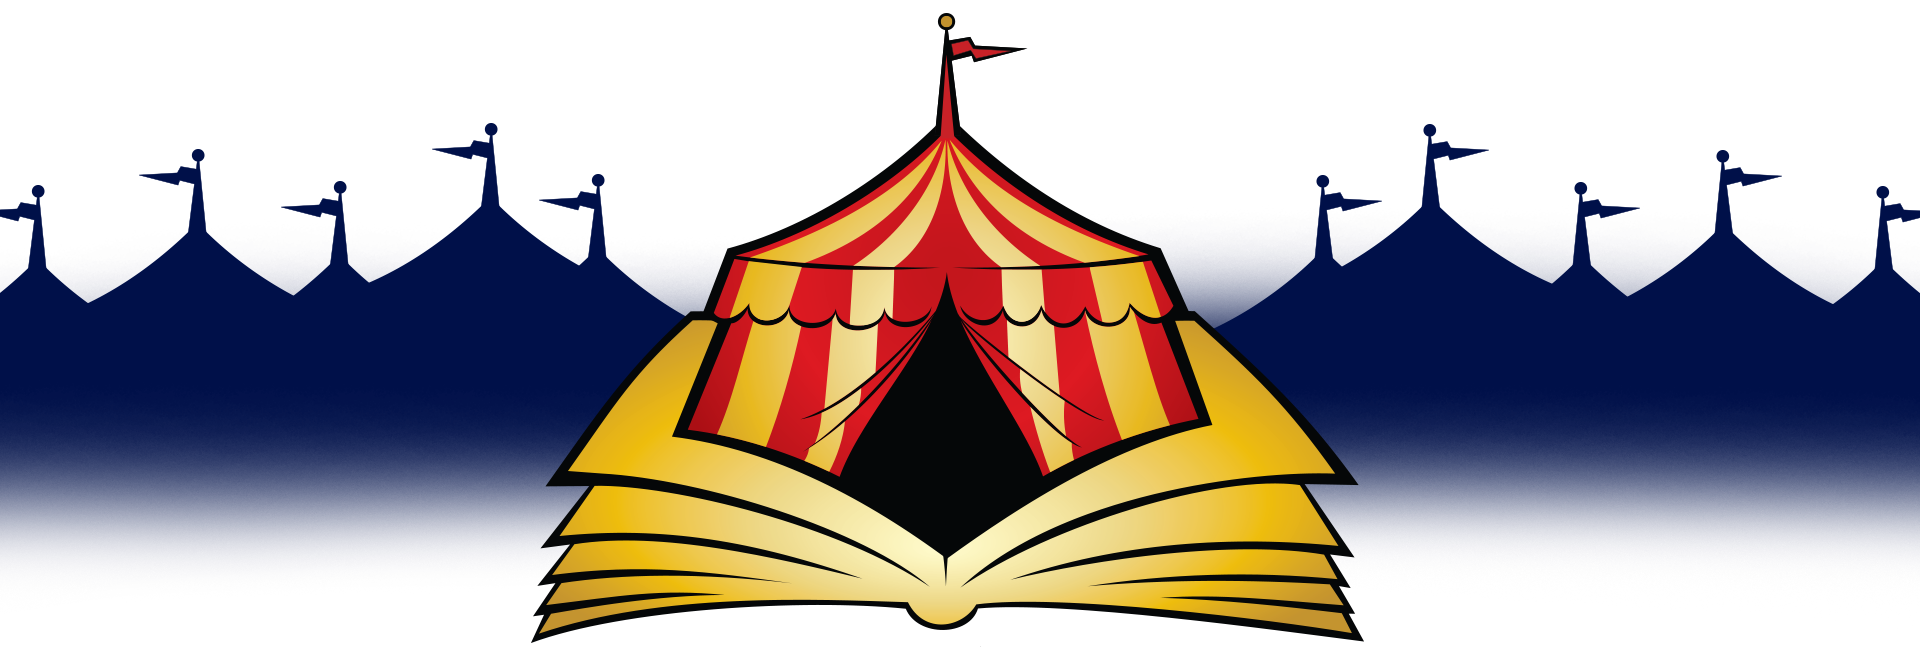 Cirque legacy traveling show. Clipart tent circus circus